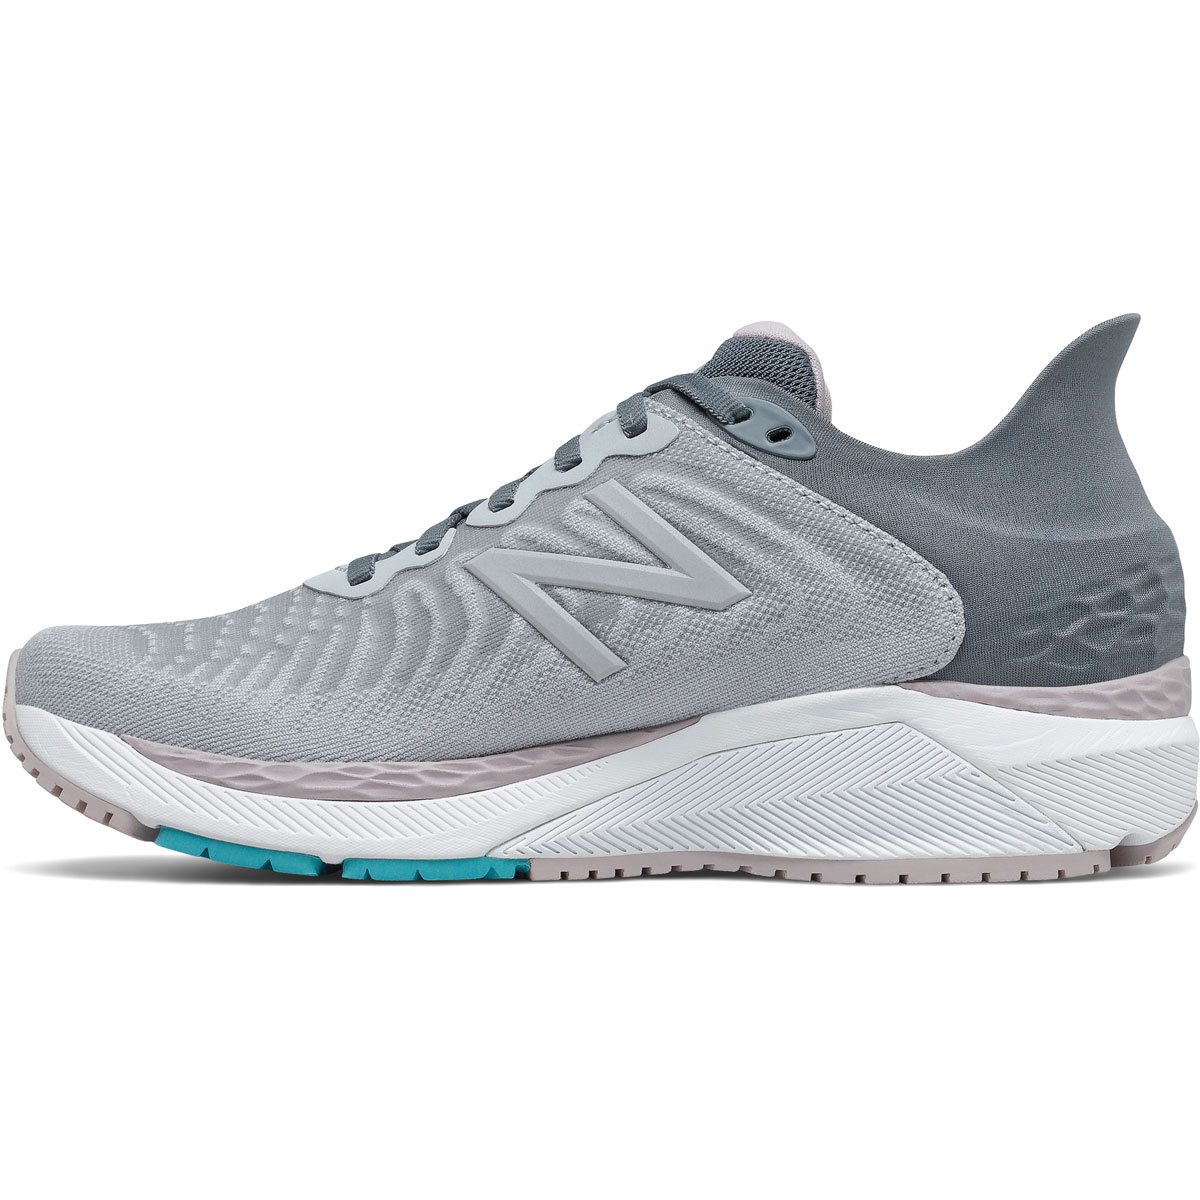 Women's New Balance 860V11 Running Shoe - Color: Light Cyclone/Logwood  - Size: 5 - Width: Narrow, Light Cyclone/Logwood, large, image 2